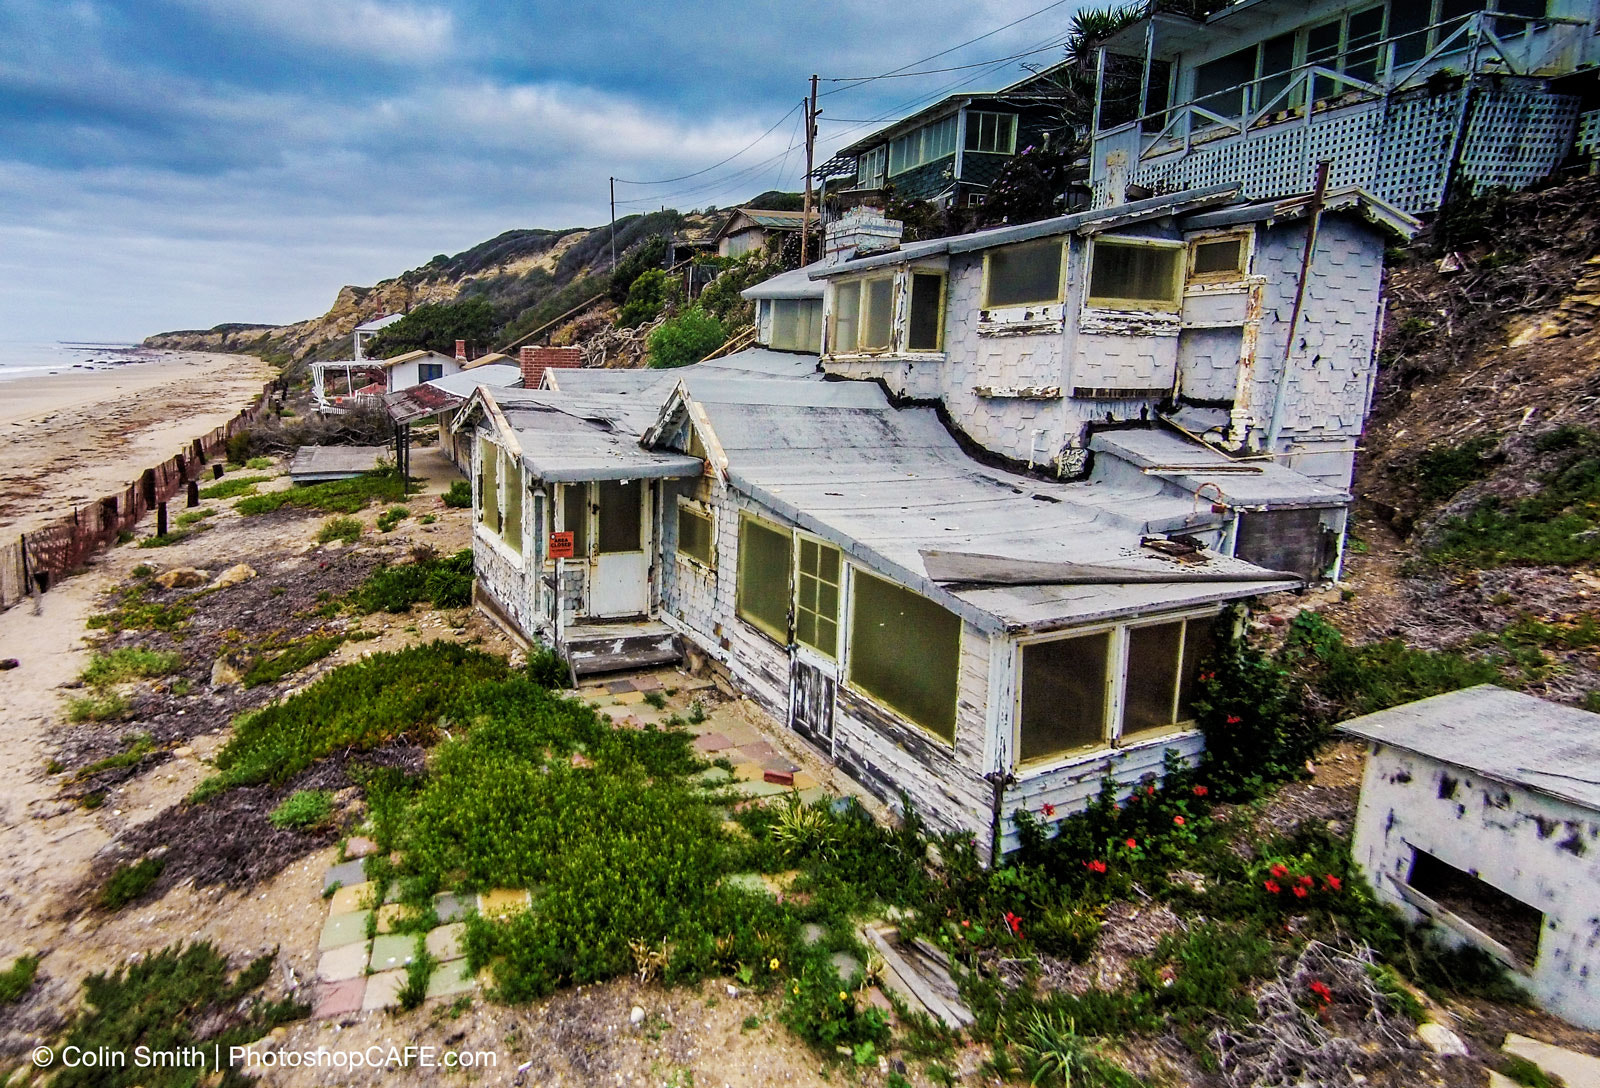 Photograph Condemned beach house from the air by Colin Smith on 500px